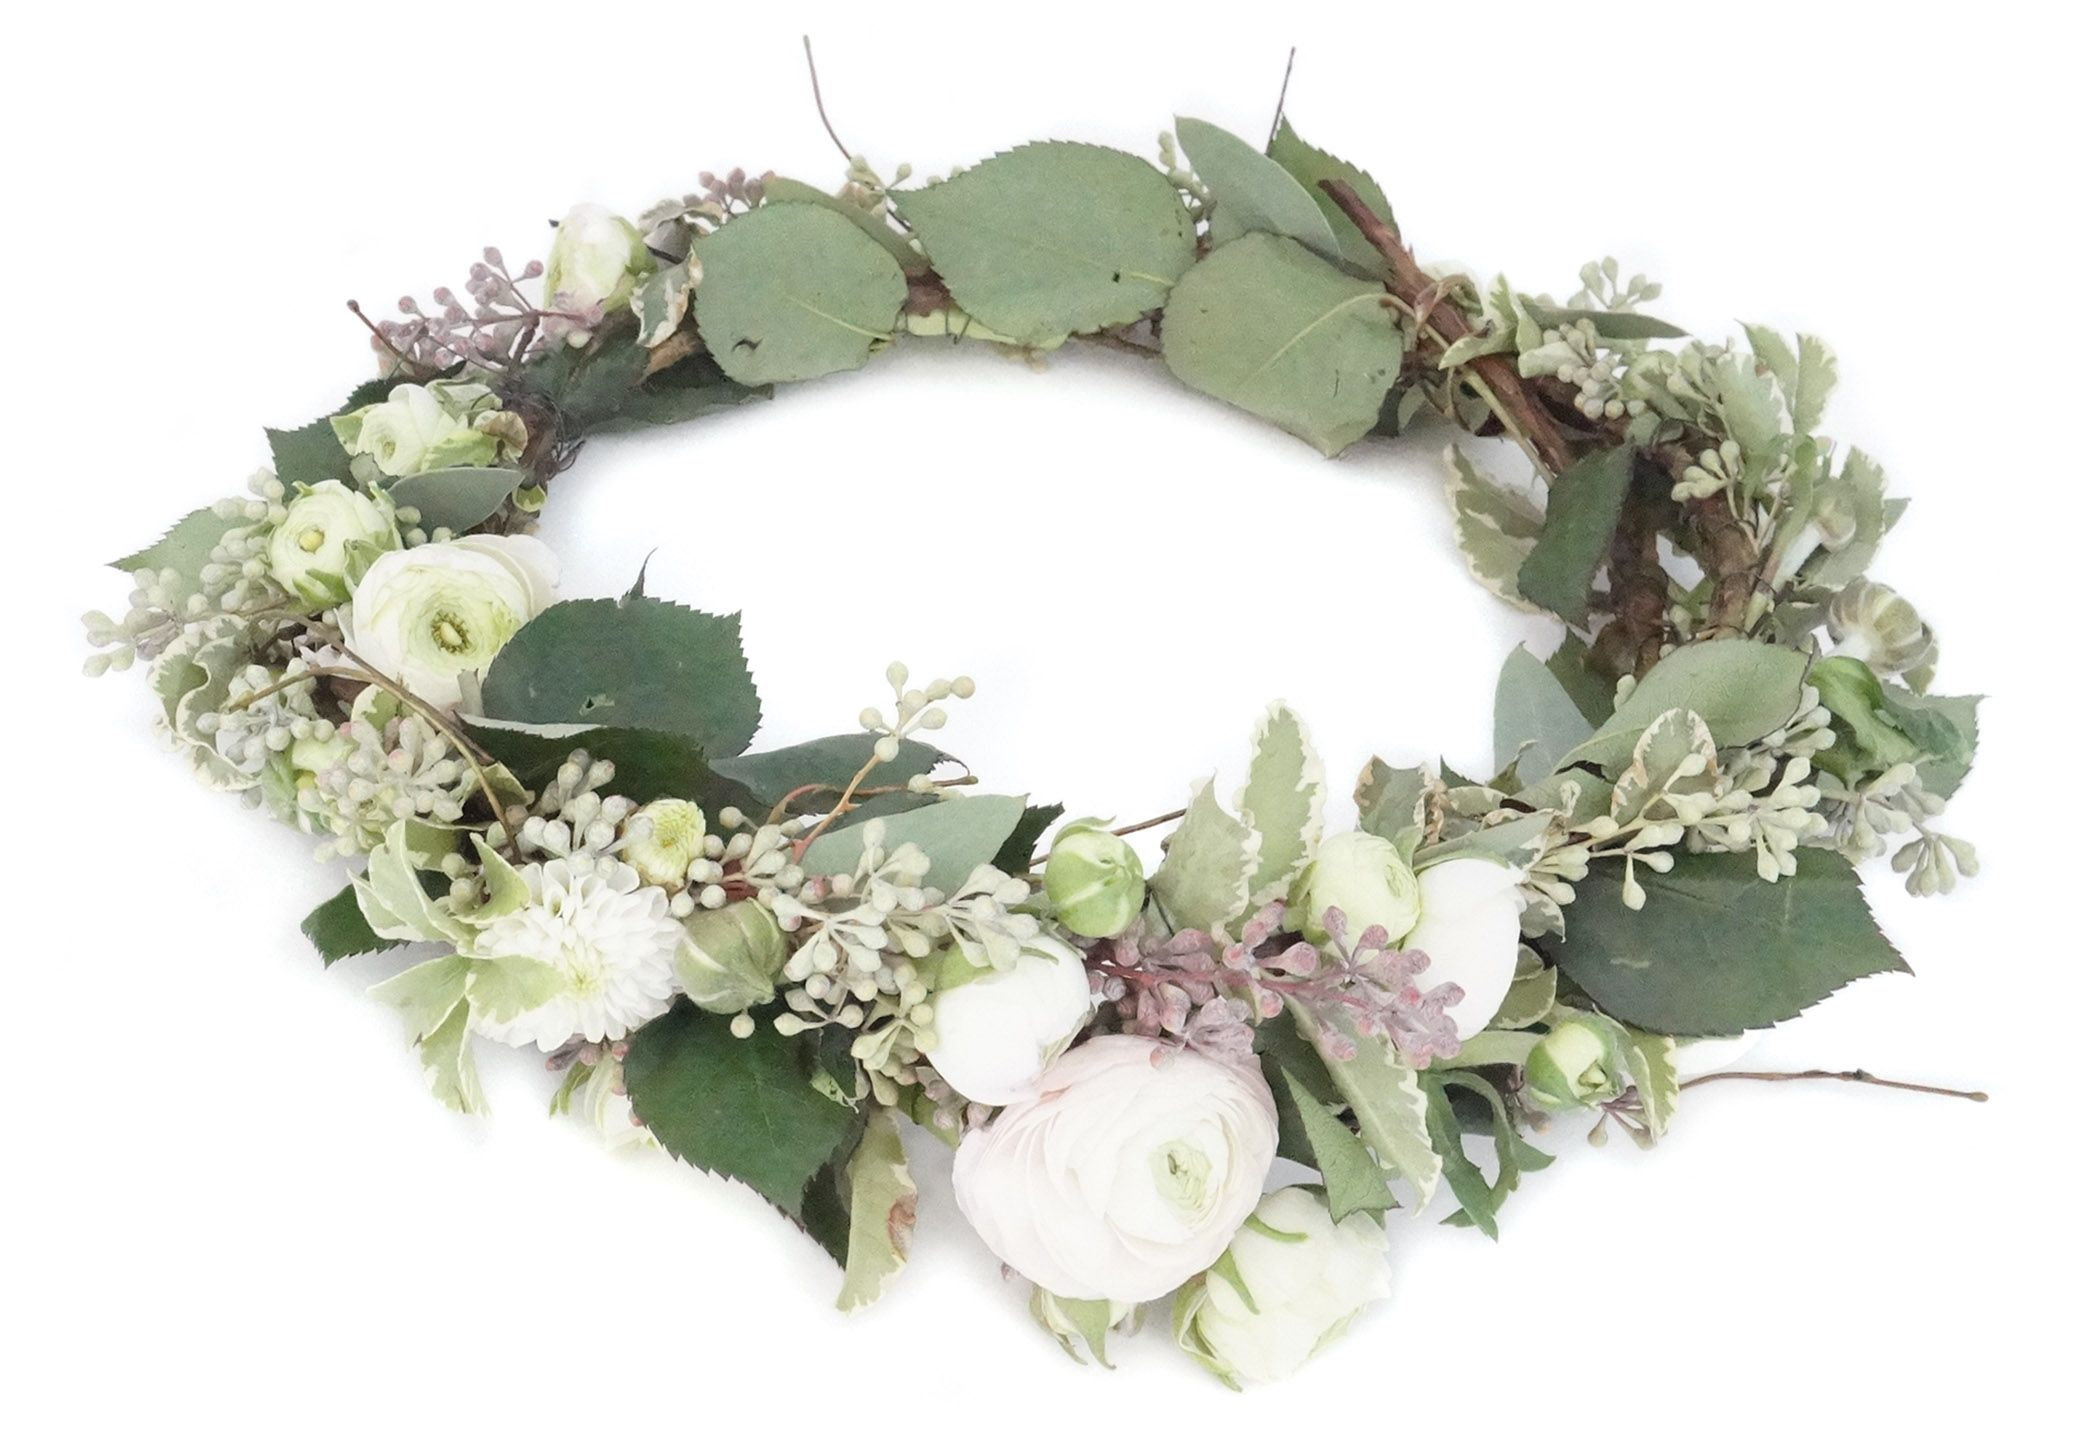 How to make a fresh flower crown fresh flowers flower crowns and how to make a fresh flower crown canadian living izmirmasajfo Images